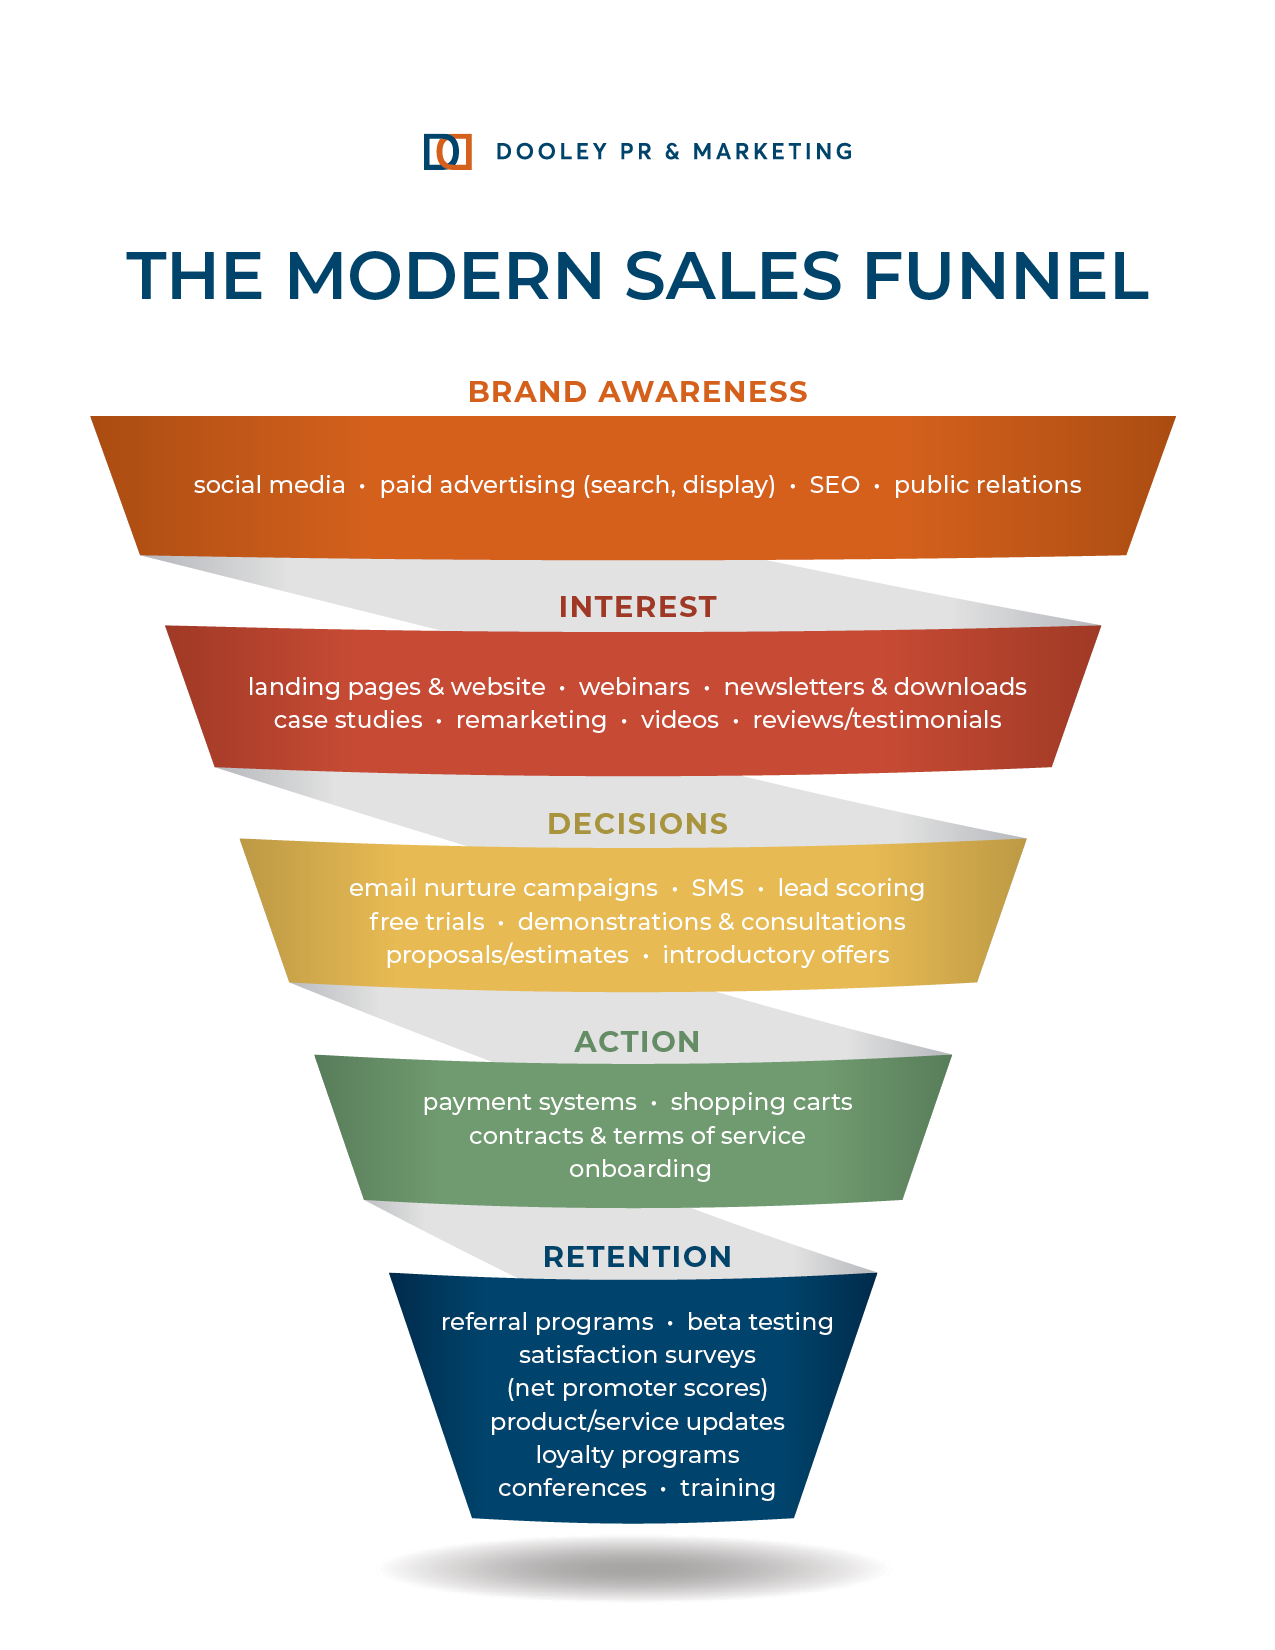 Modern Sales Funnel outlining the sales strategy from brand awareness to retention